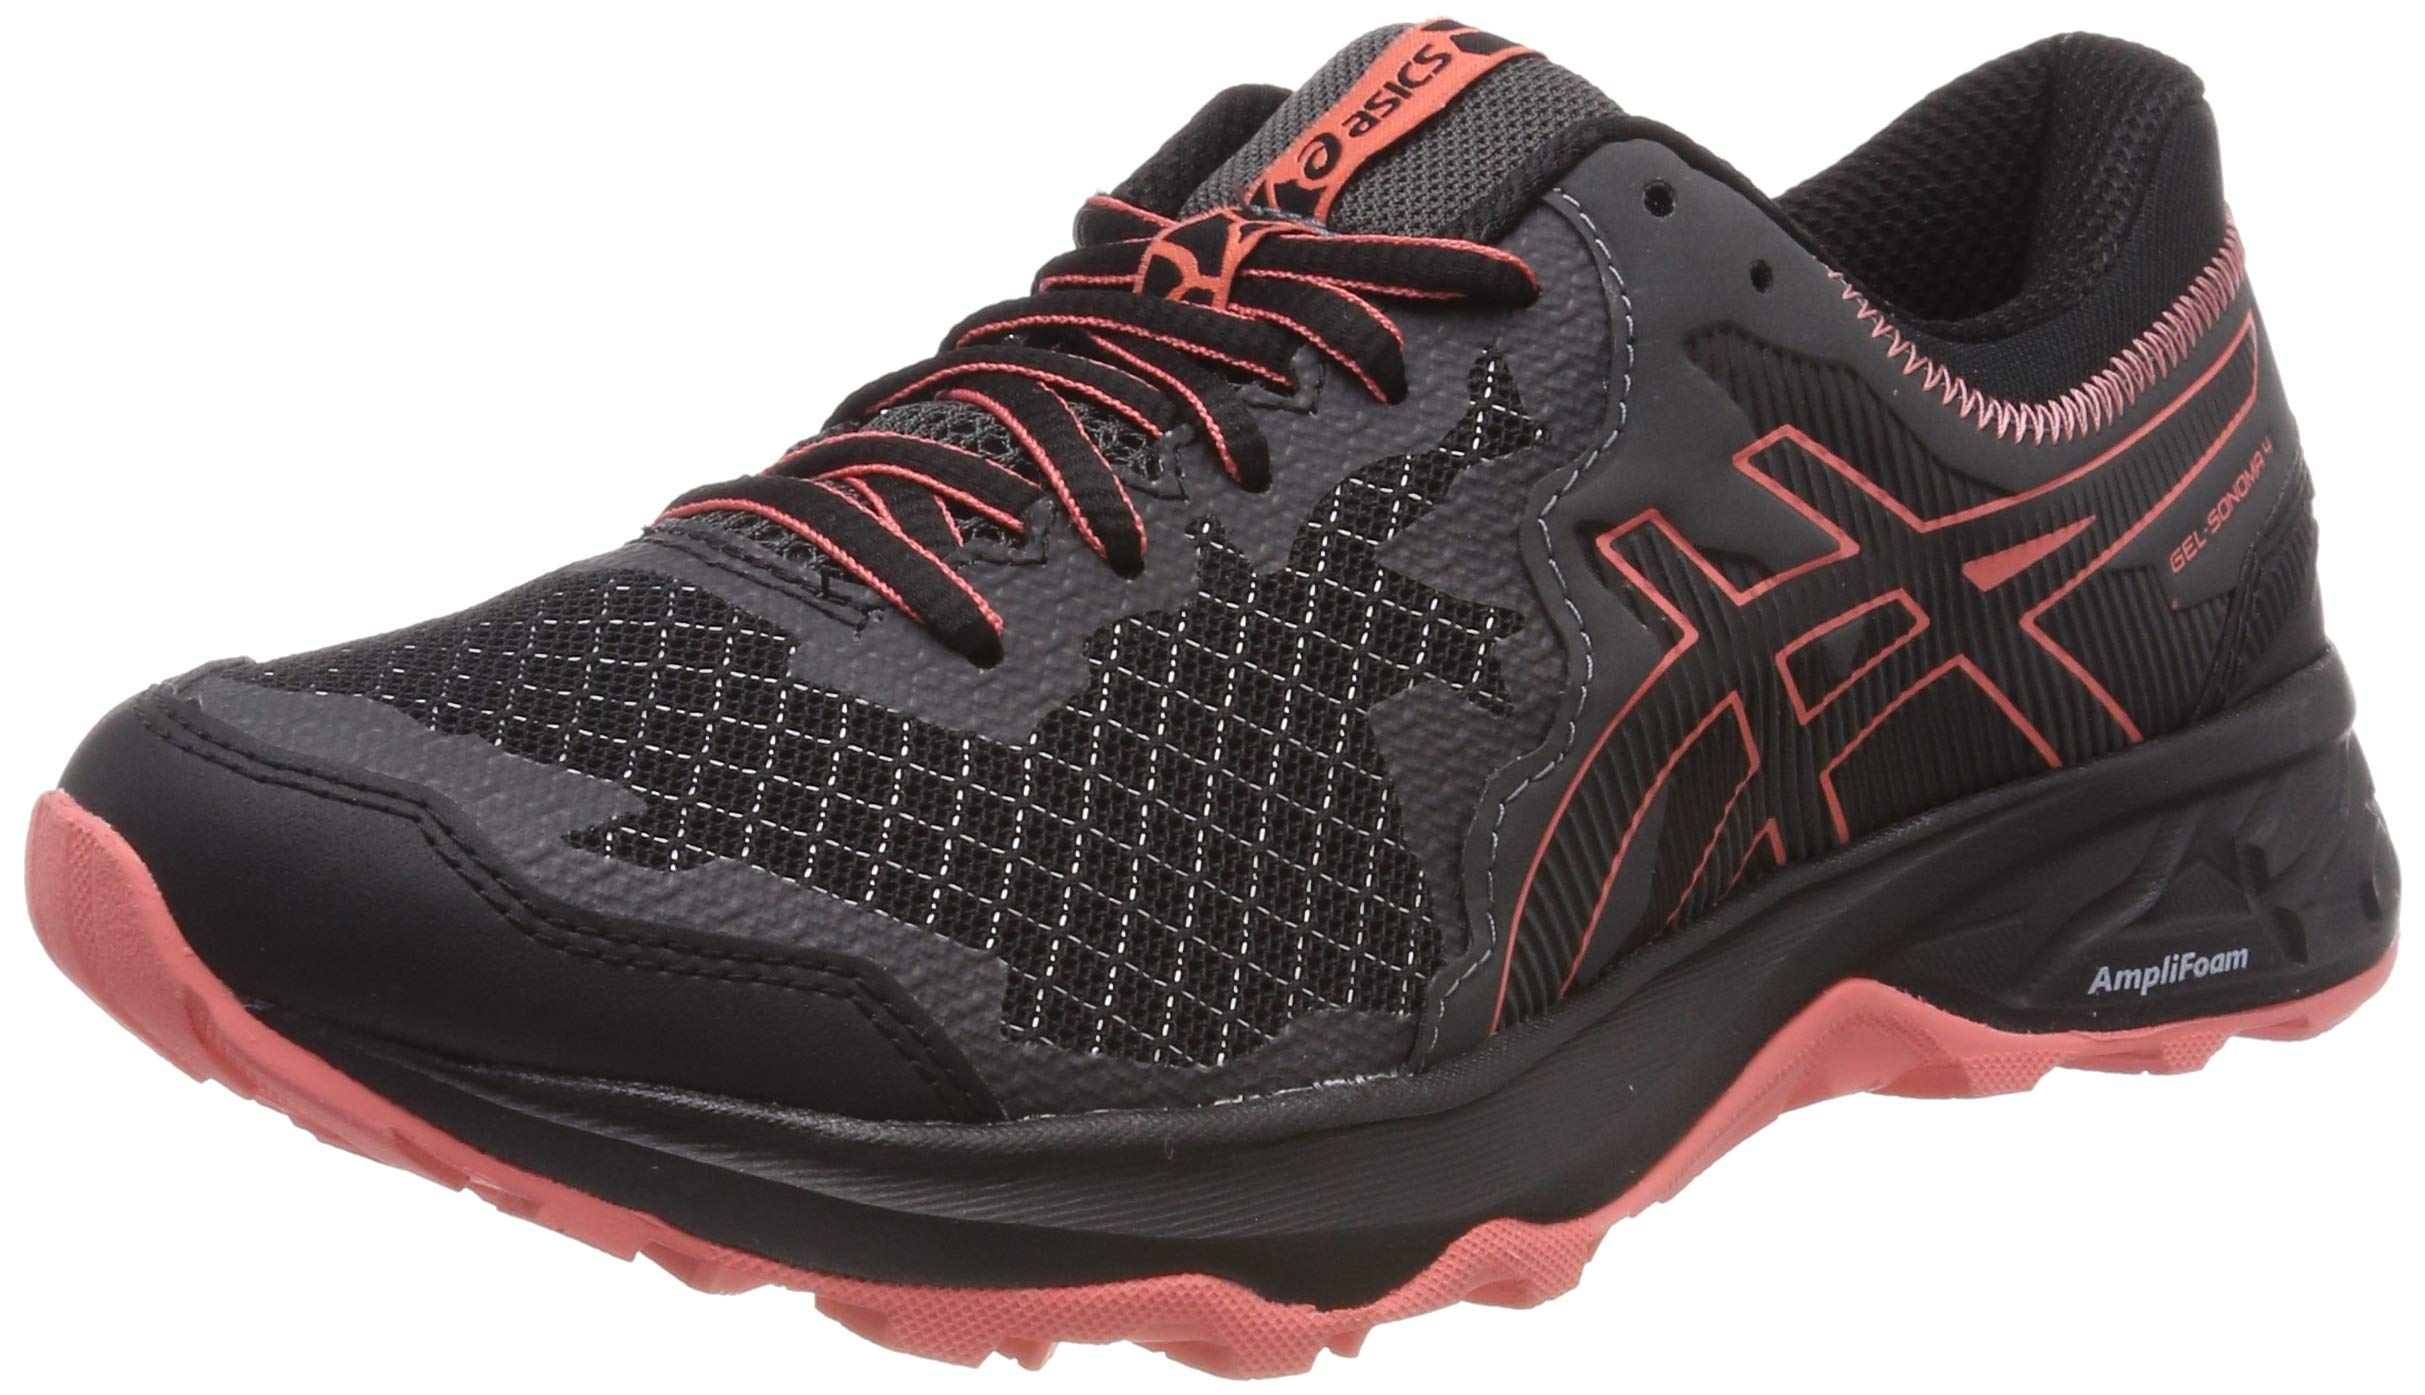 81d9oduv0cL - ASICS Women's Gel-Sonoma 4 Running Shoes,